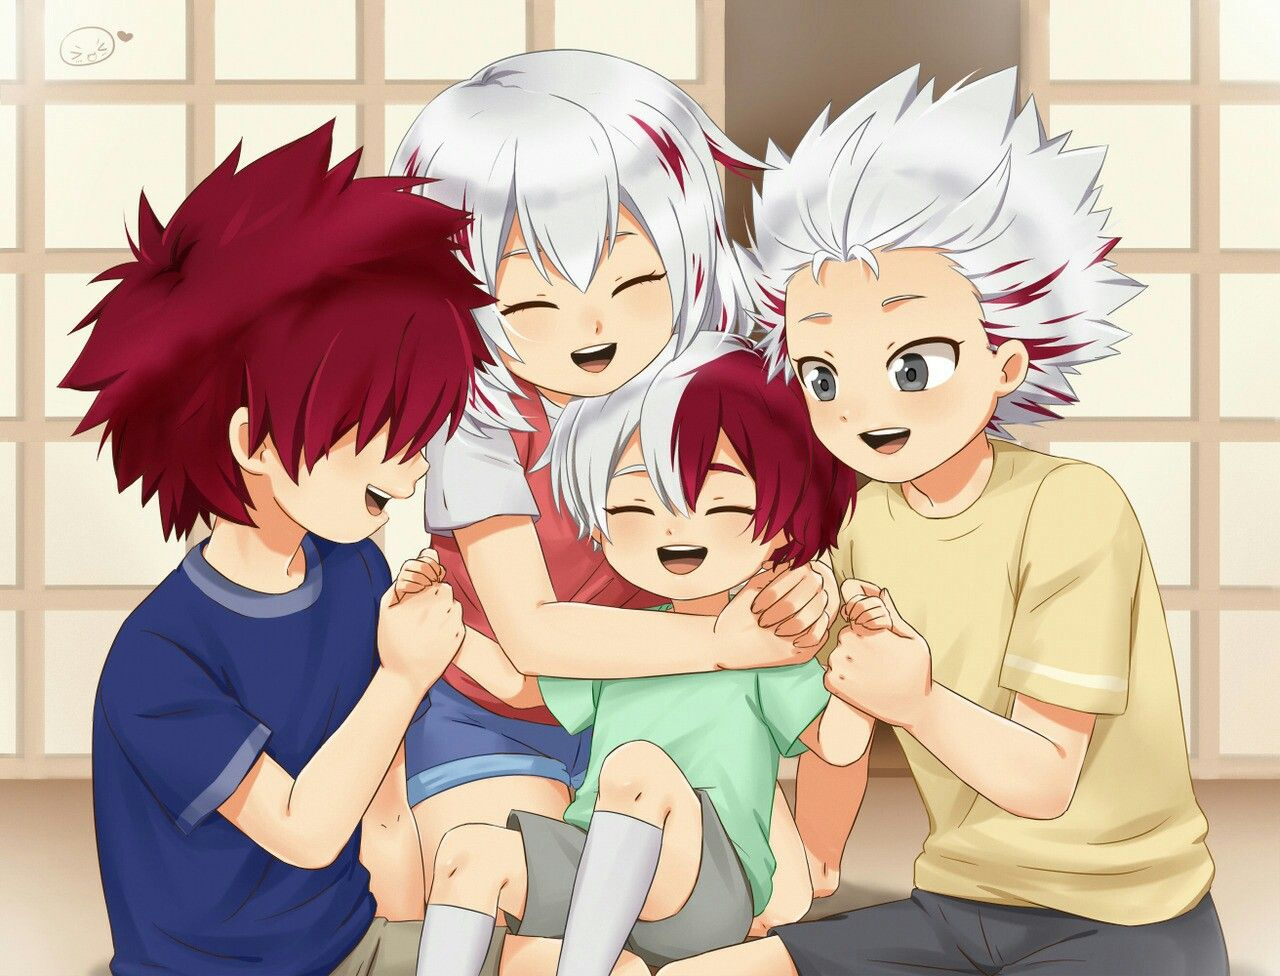 Have Some More Depressing But Adorable Todoroki Family